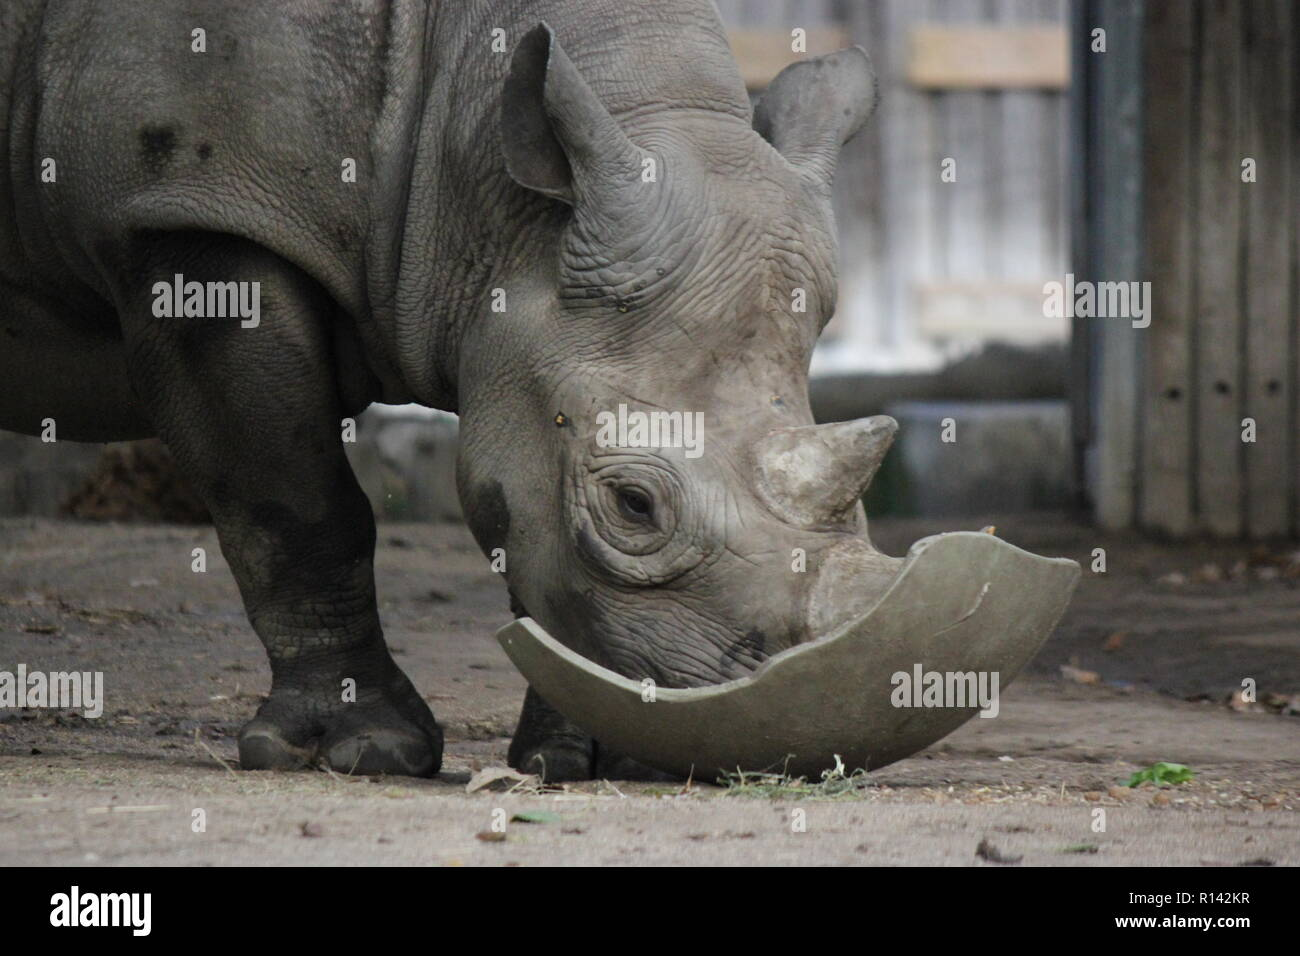 The black rhinoceros, hook-lipped rhinoceros, Diceros bicornis walking around his animal pen at the Lincoln Park Zoo in Chicago, Illinois. - Stock Image